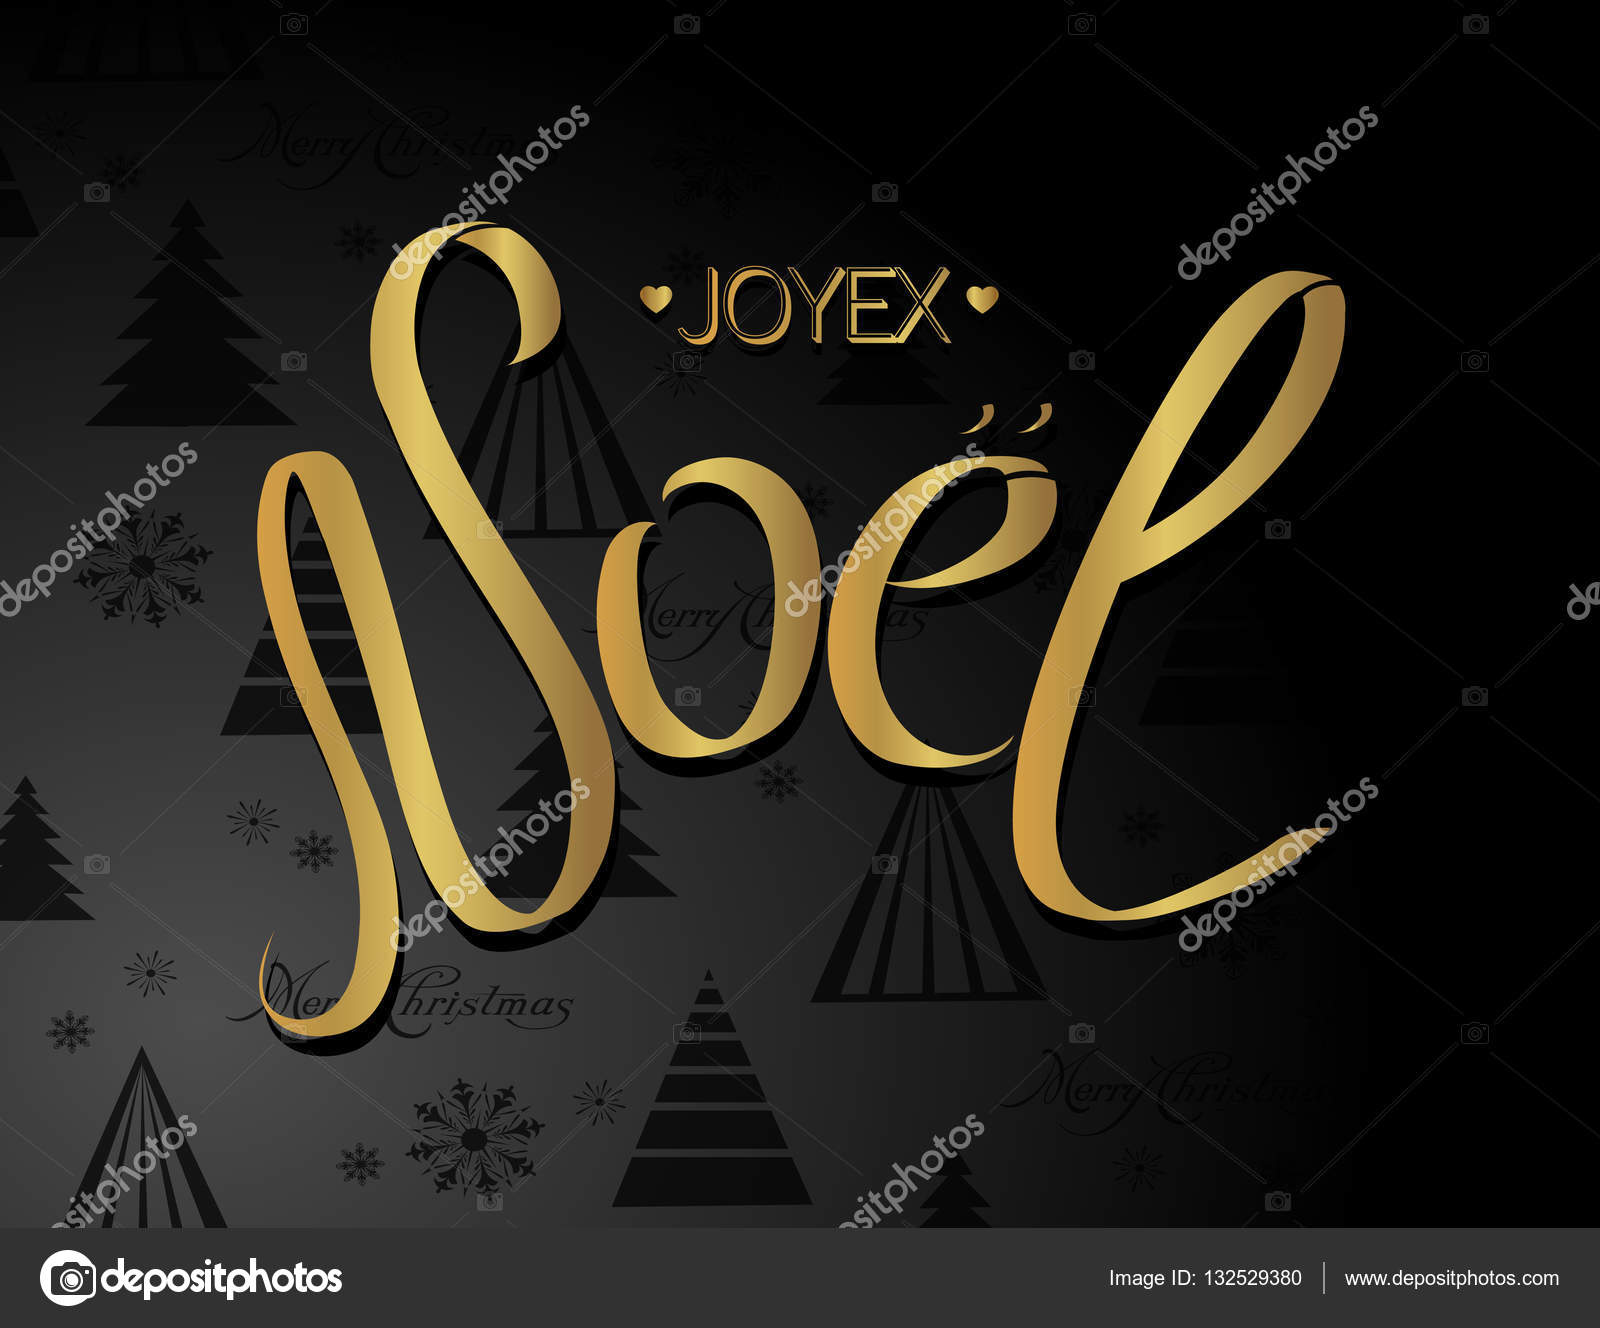 Merry Christmas Card Template With Greetings In French Language